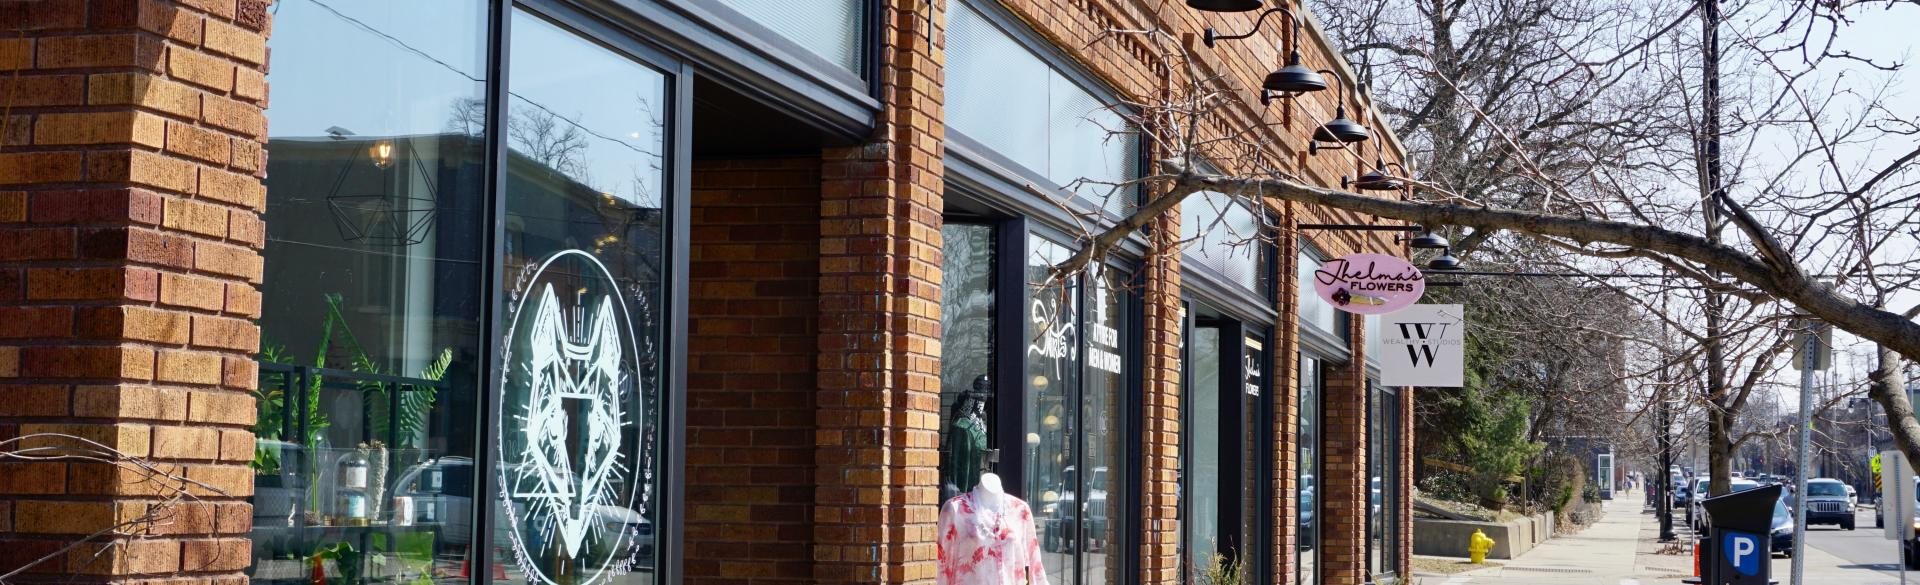 Shop around some of the locally-owned businesses within a block of the bakery.